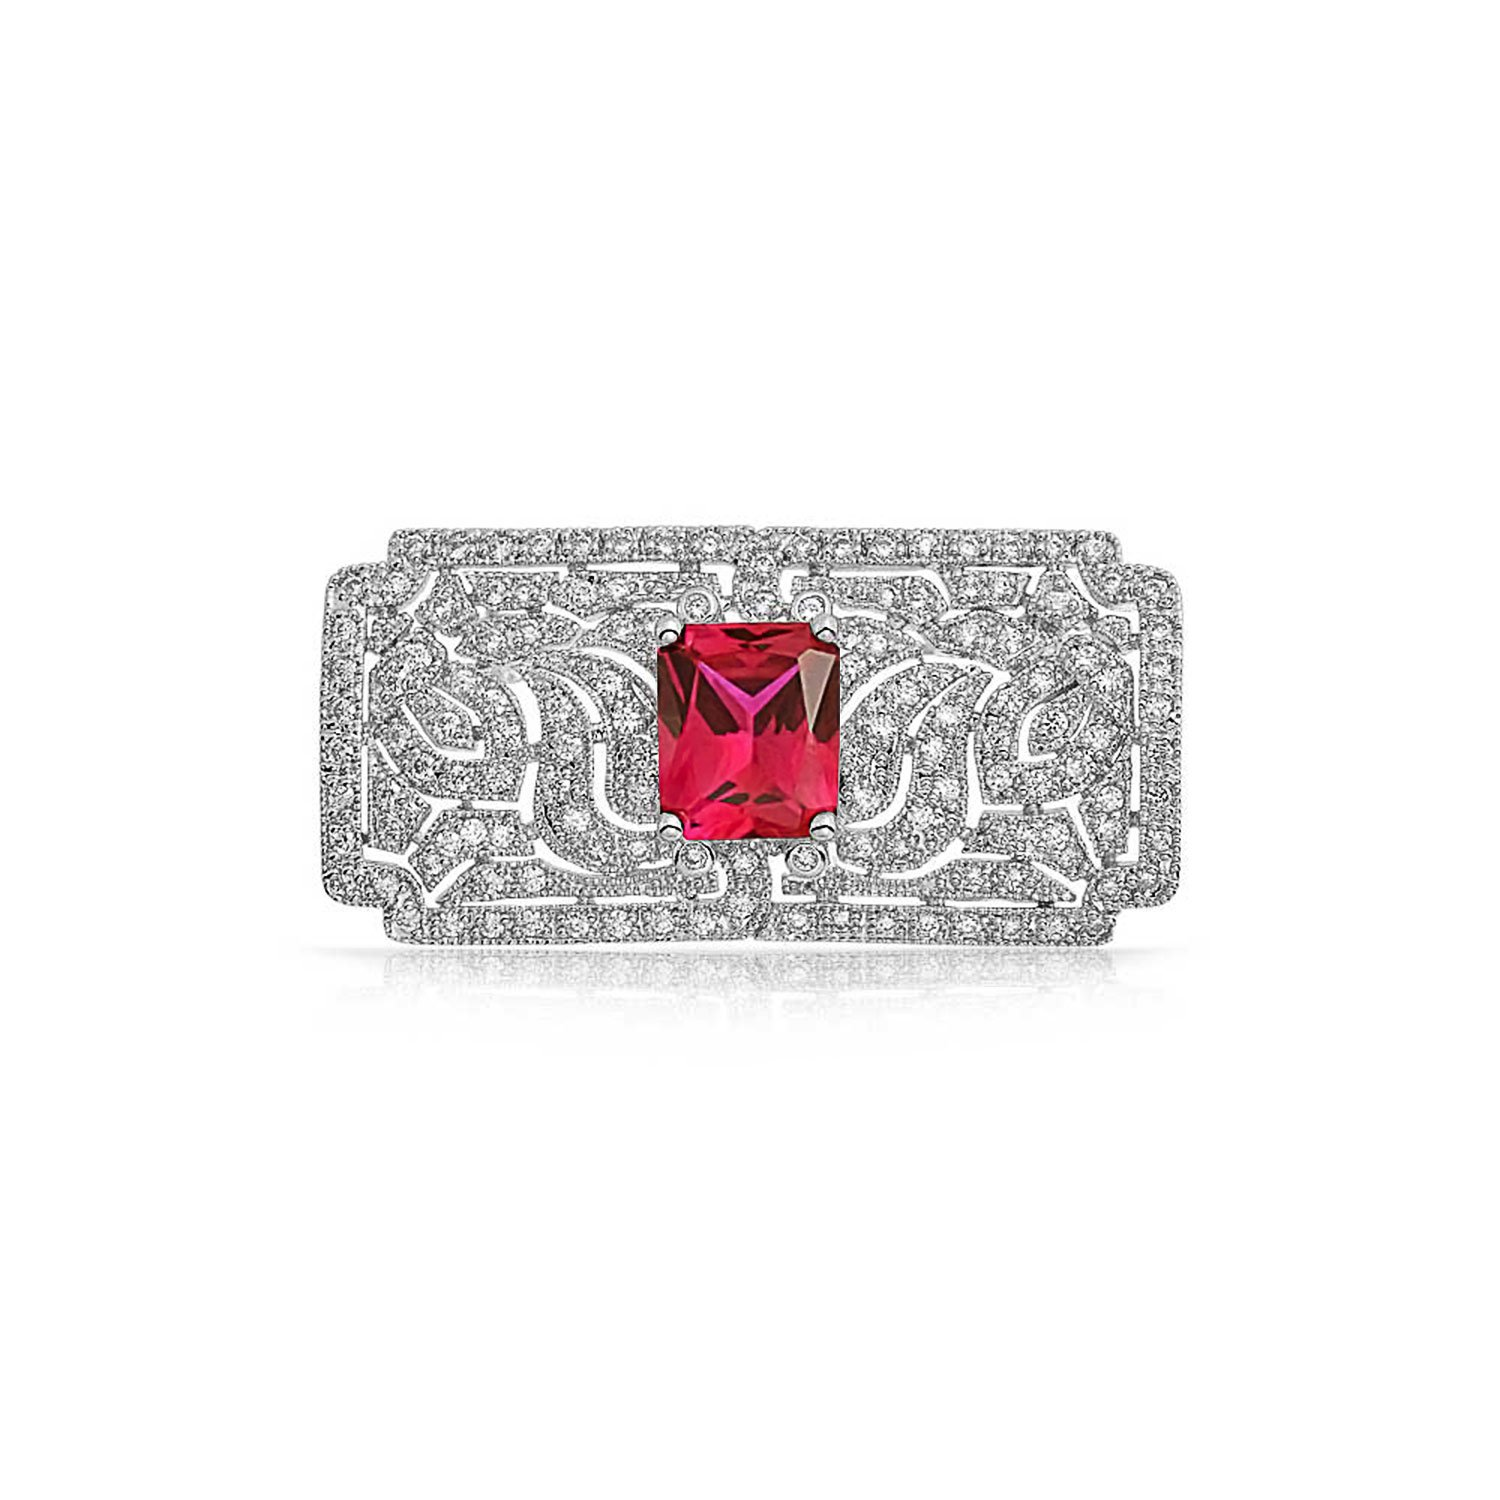 Bling Jewelry Simulated Ruby CZ Art Deco Style Brooch Pin Rhodium Plated